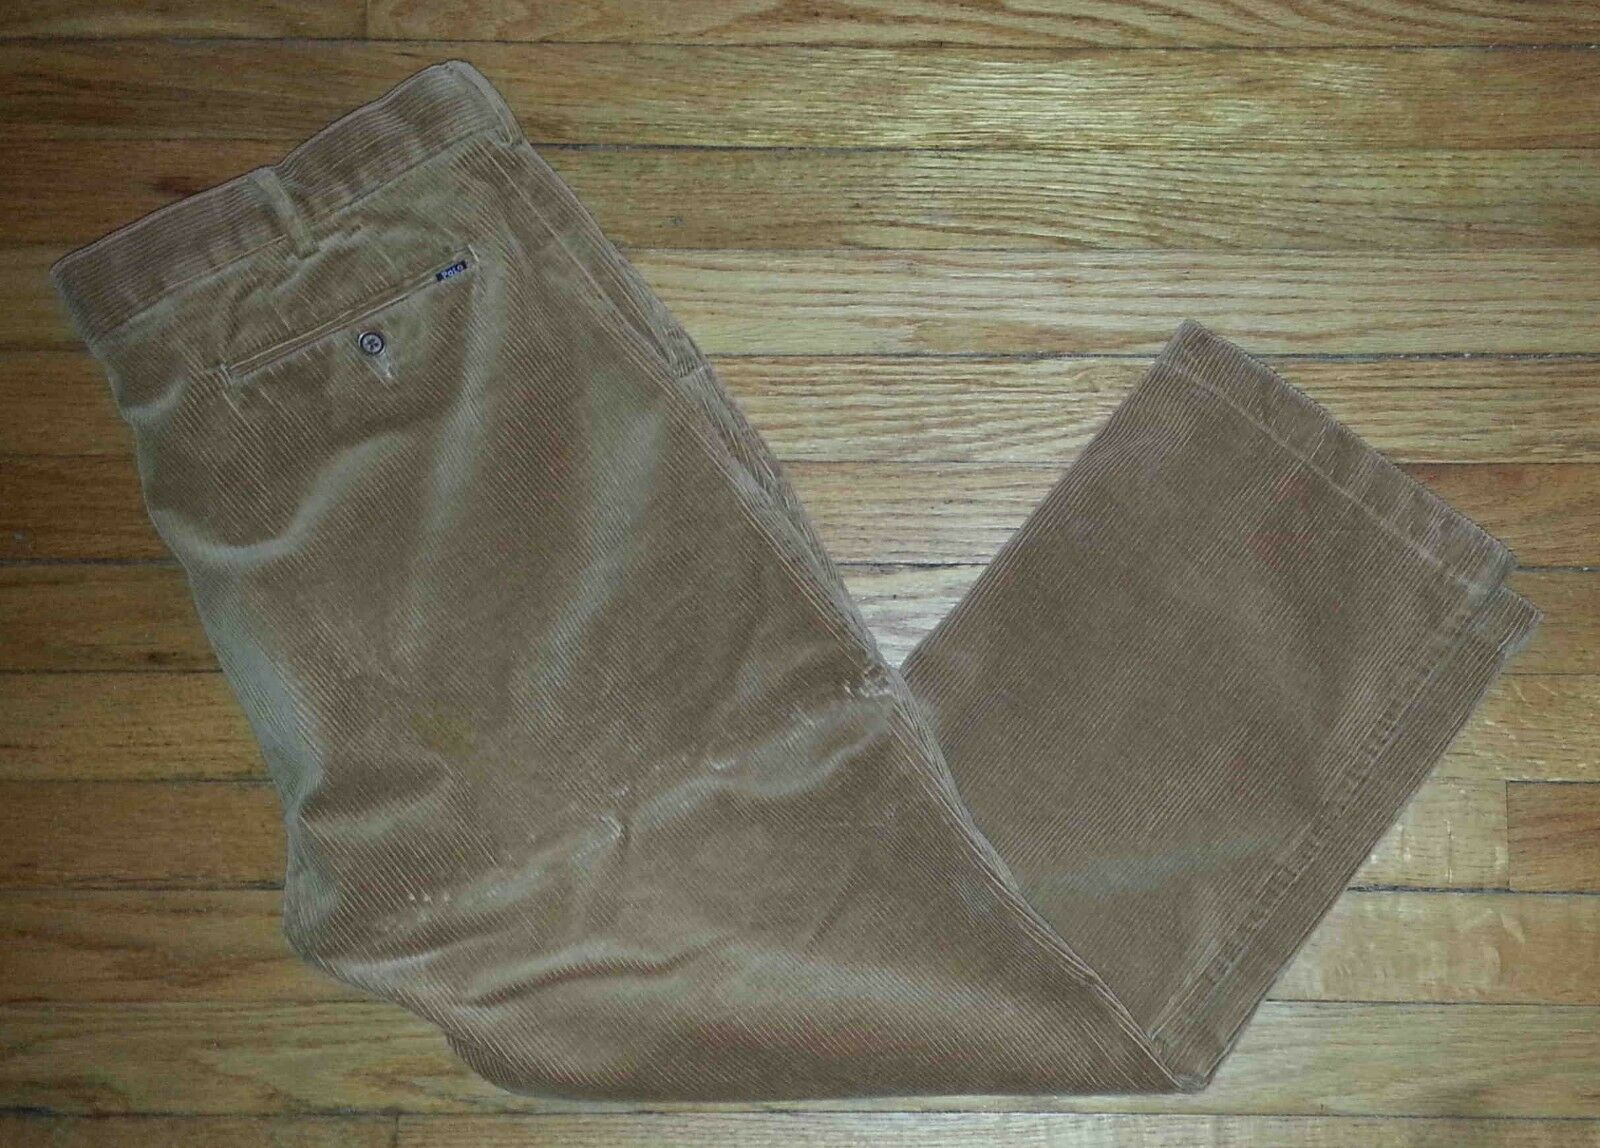 Ralph Lauren Polo Pants Corduroy 40x30 Solid Lt Brown Classic Fit SOFT p3057